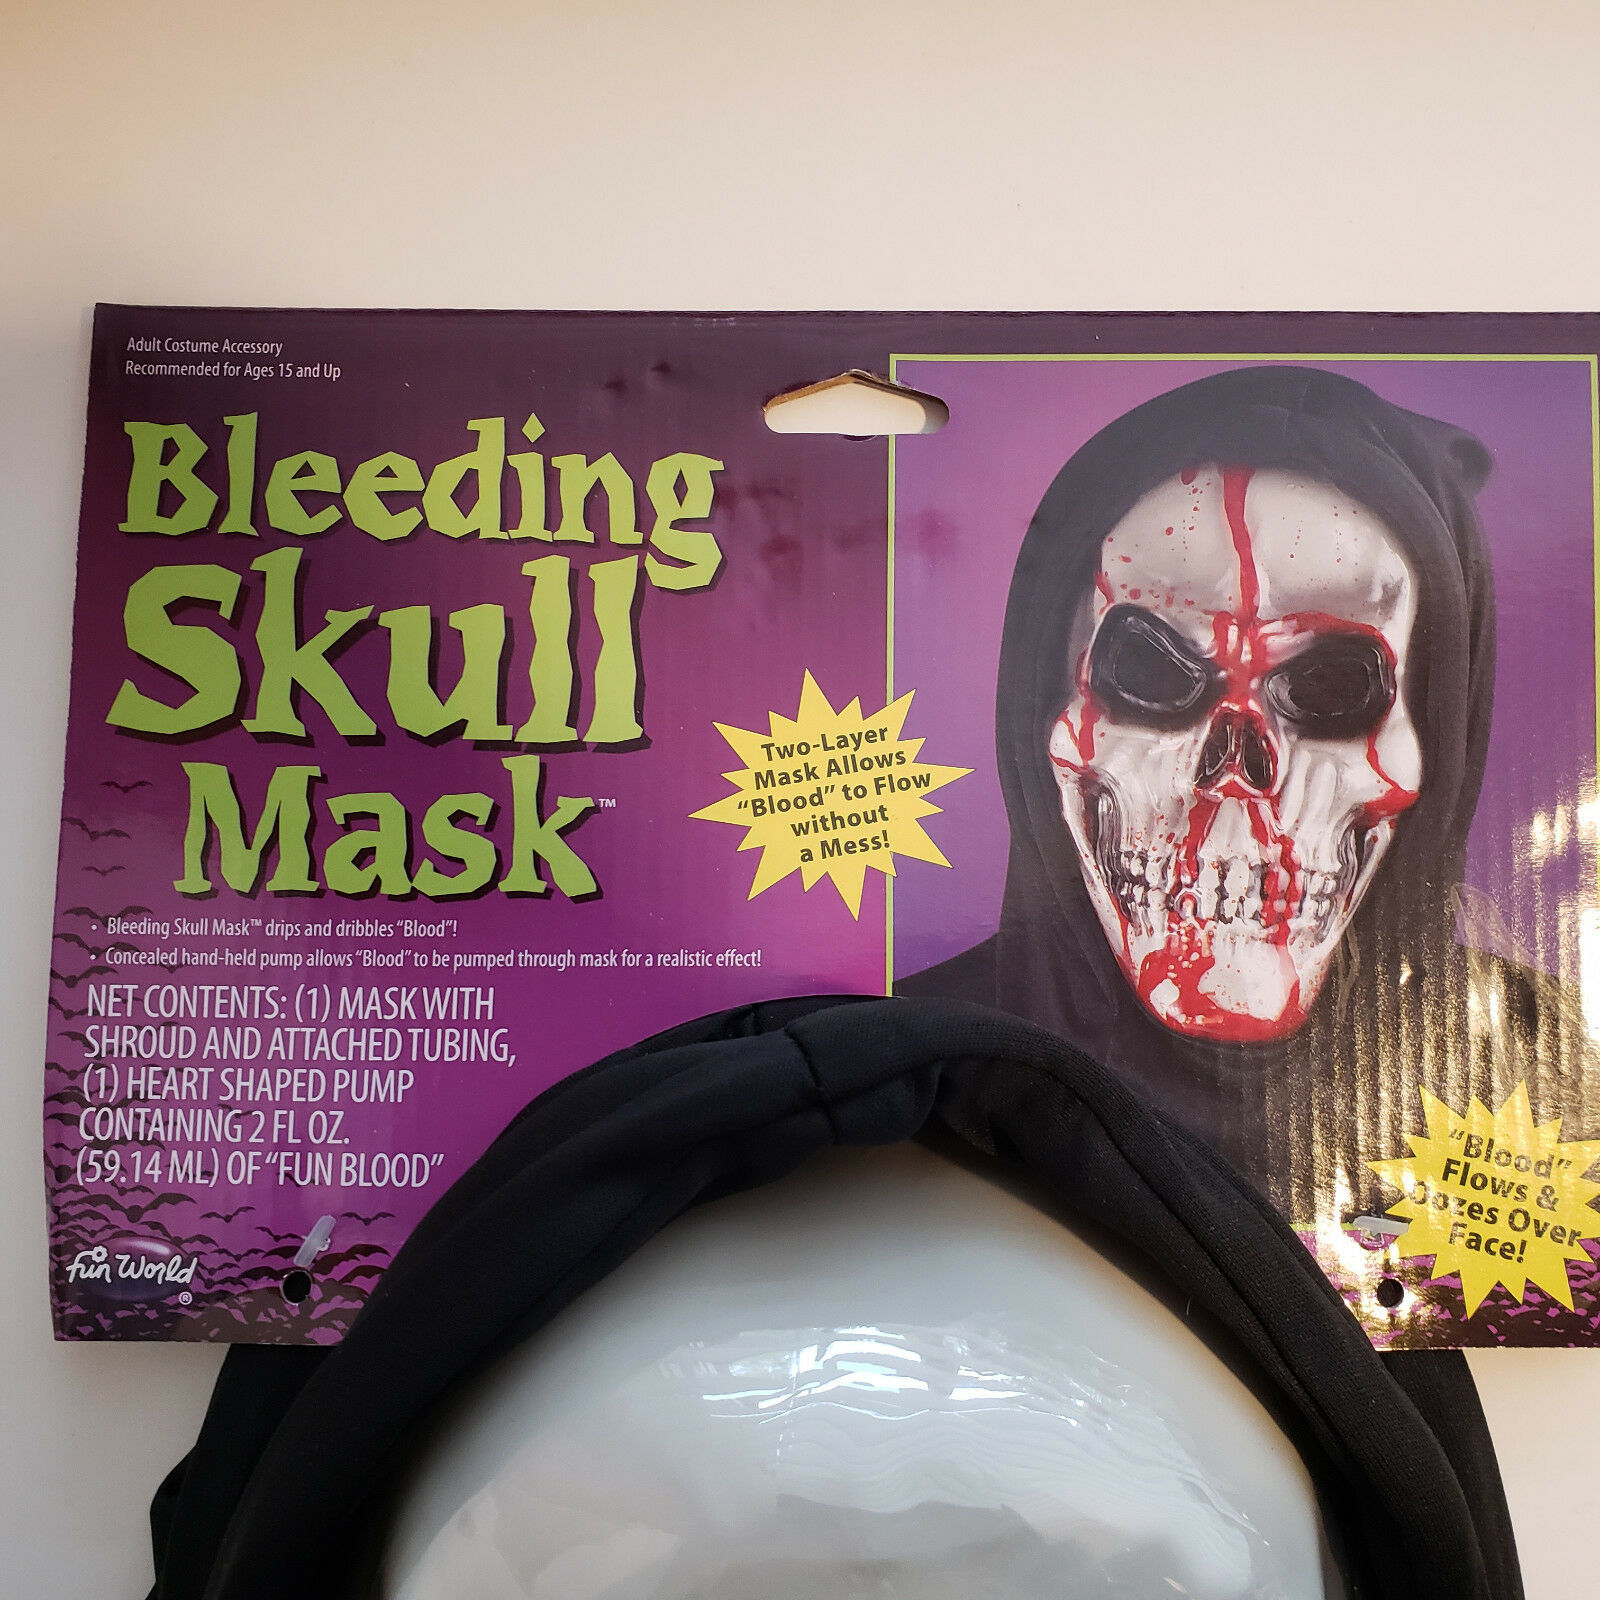 Bleeding Skull Mask Skeleton Costume Dripping Bloody Scary Cosplay Halloween